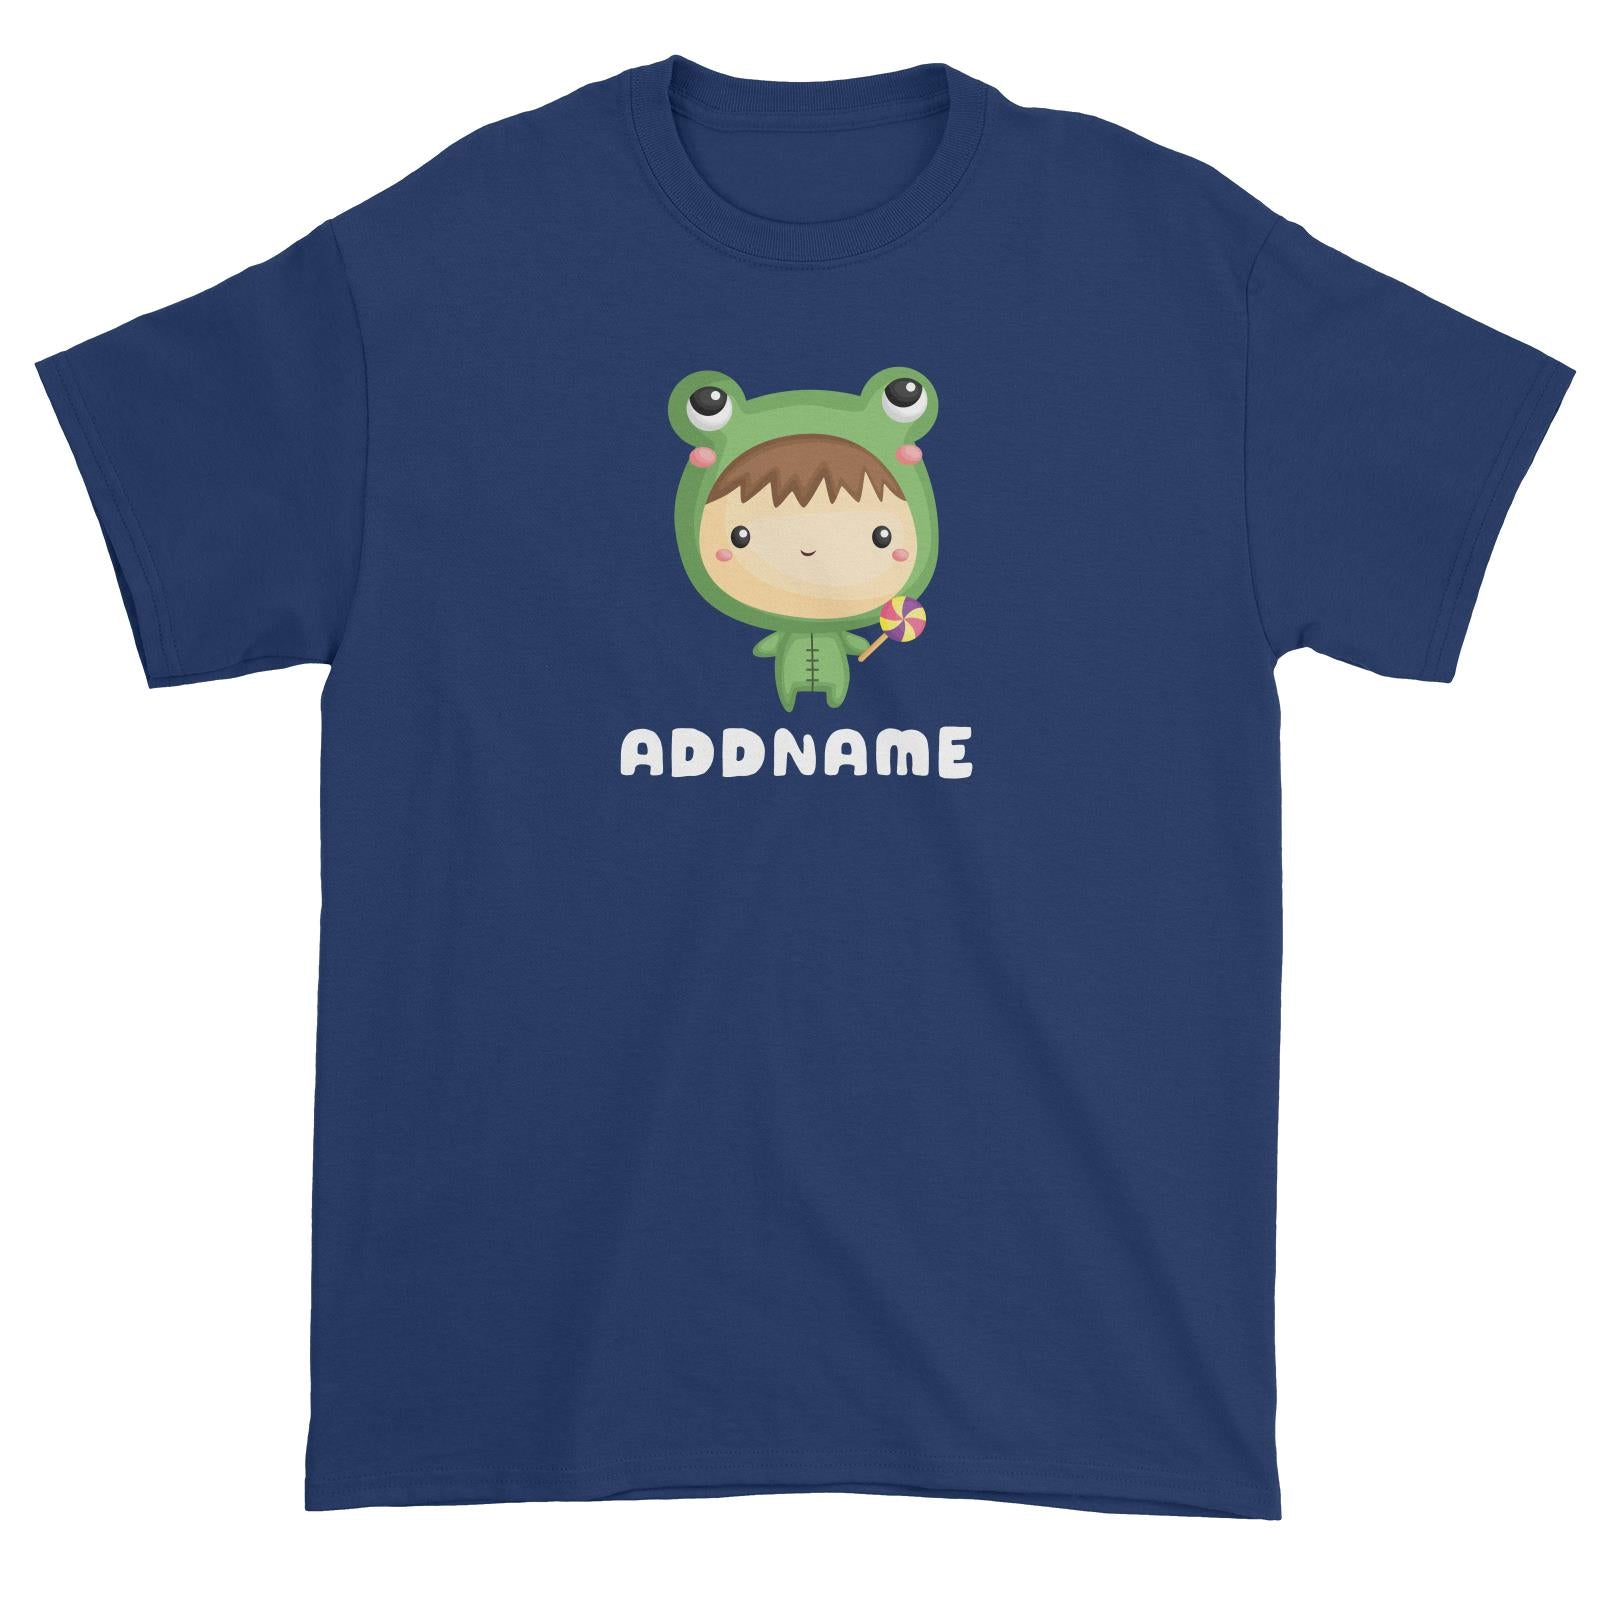 Birthday Frog Baby Boy Wearing Frog Suit Holding Lolipop Addname Unisex T-Shirt